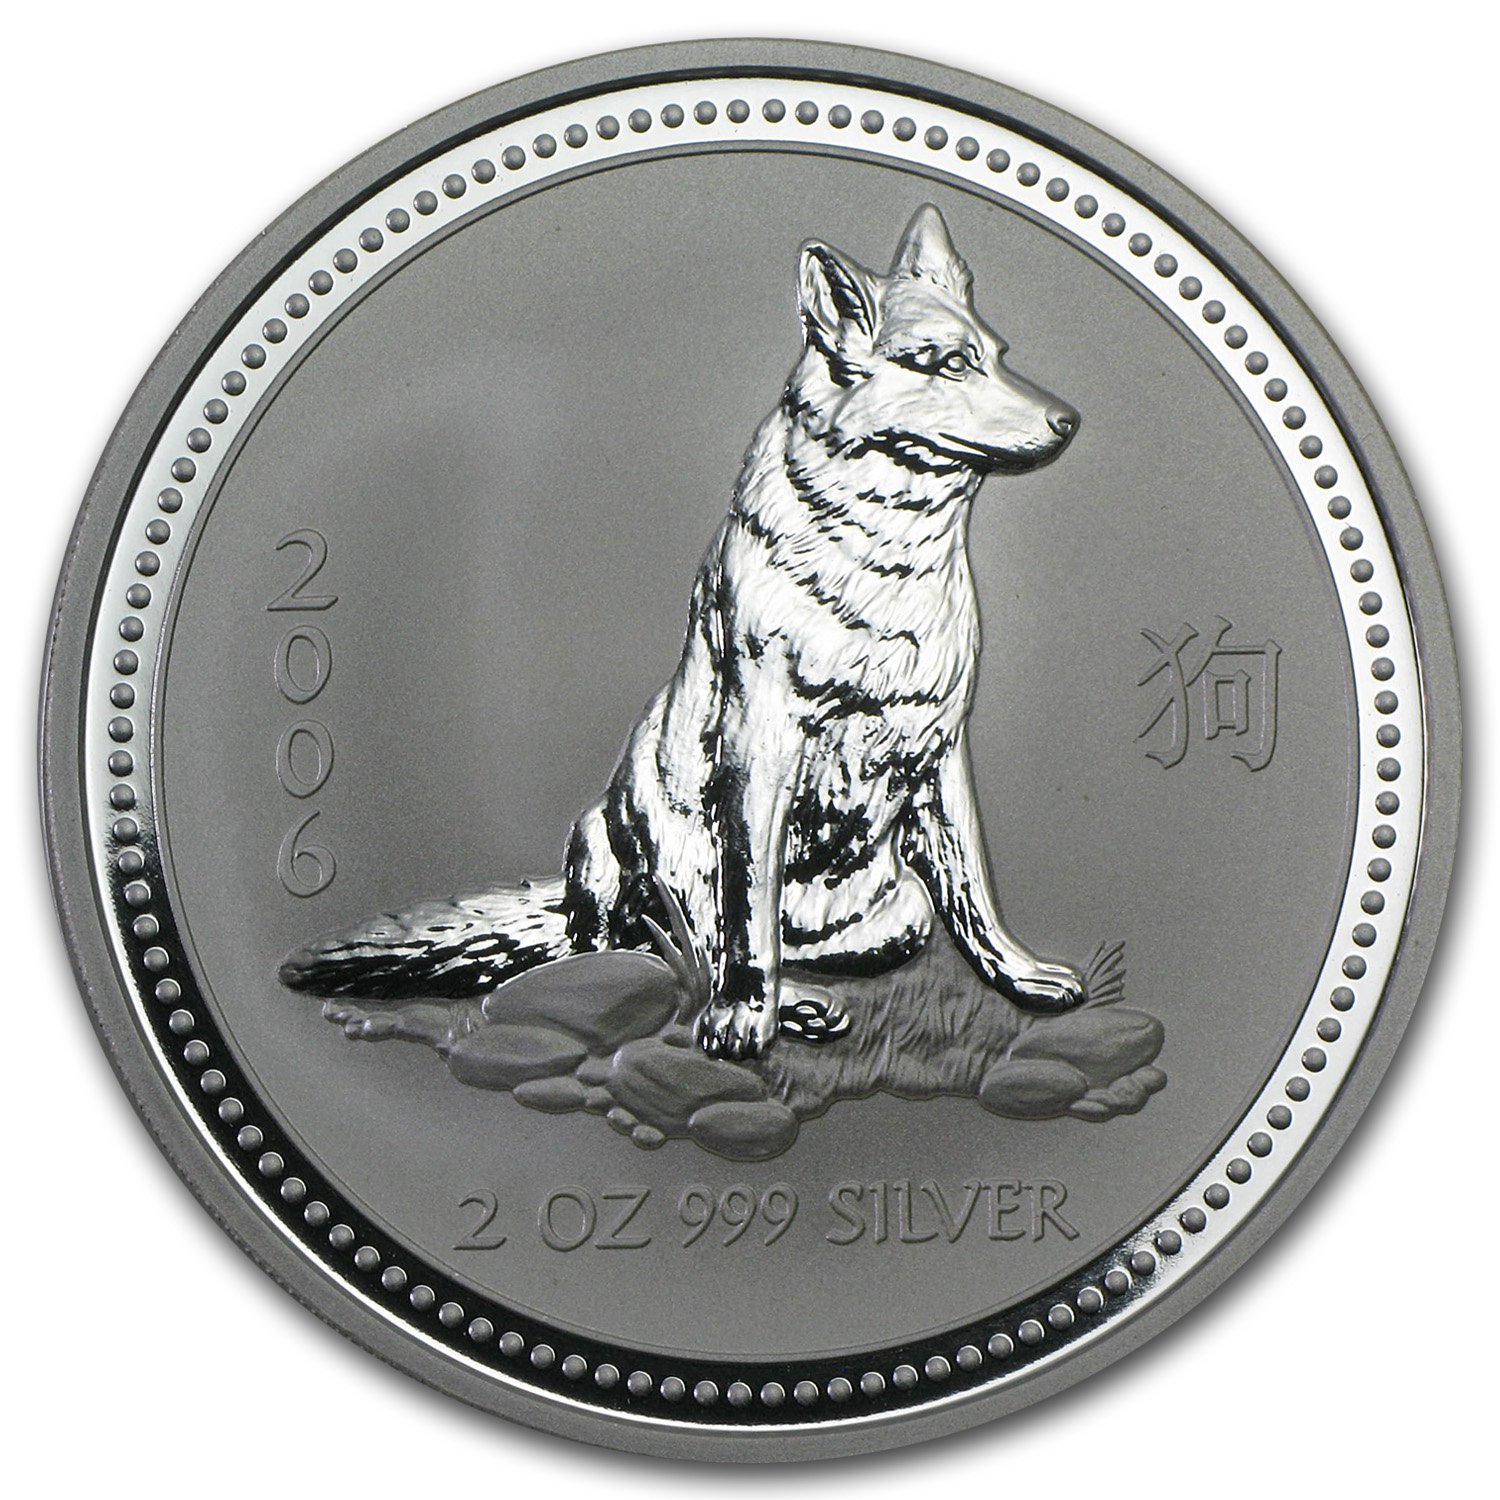 2006 Australia 2 oz Silver Year of the Dog BU